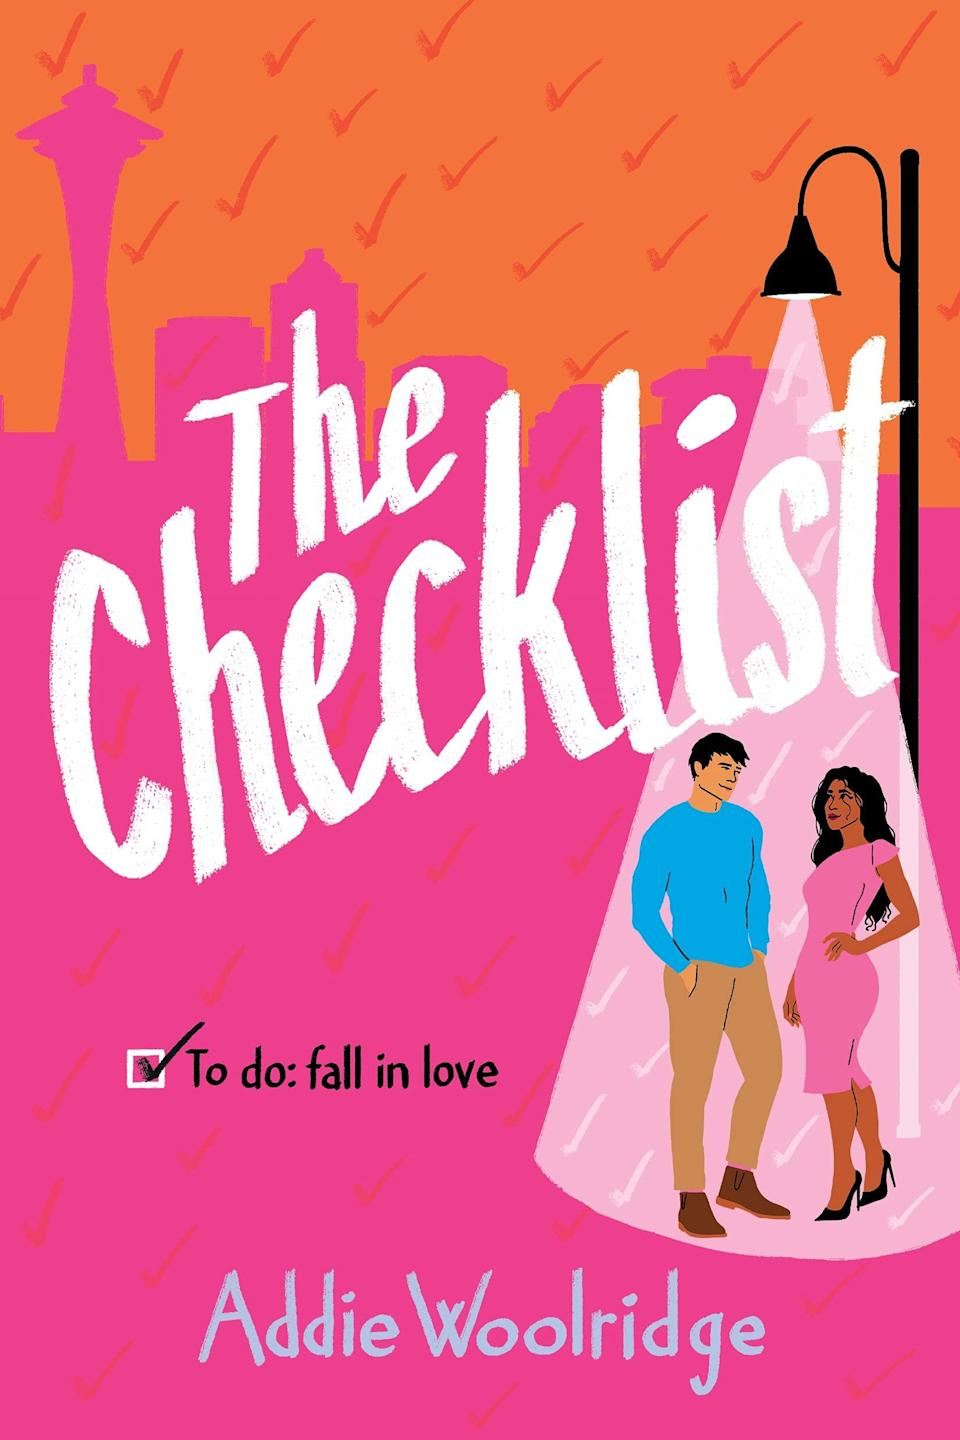 <p>After showing up her boss, Dylan Delacroix is exiled to her hometown of Seattle in Addie Woolridge's charming rom-com <span><strong>The Checklist</strong></span>. Despite her less than ideal situation, Dylan has a plan to come out on top - unfortunately, she forgot to factor in her incredibly hot and distracting new neighbor. </p> <p><em>Out June 1</em></p>